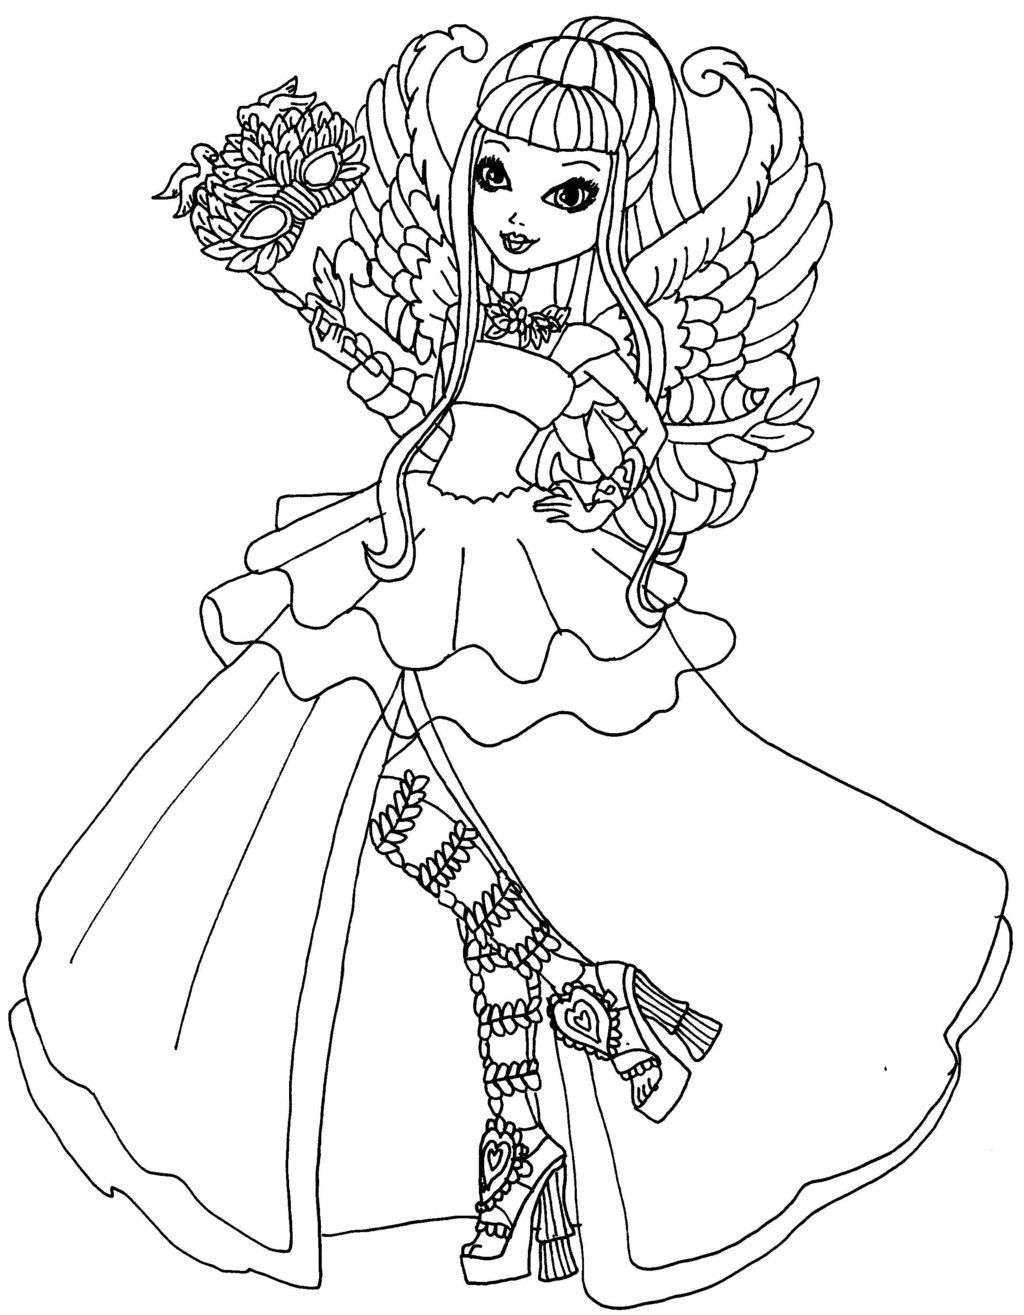 ever after high coloring pages raven queen coloring page at getdrawings free download after coloring pages ever high